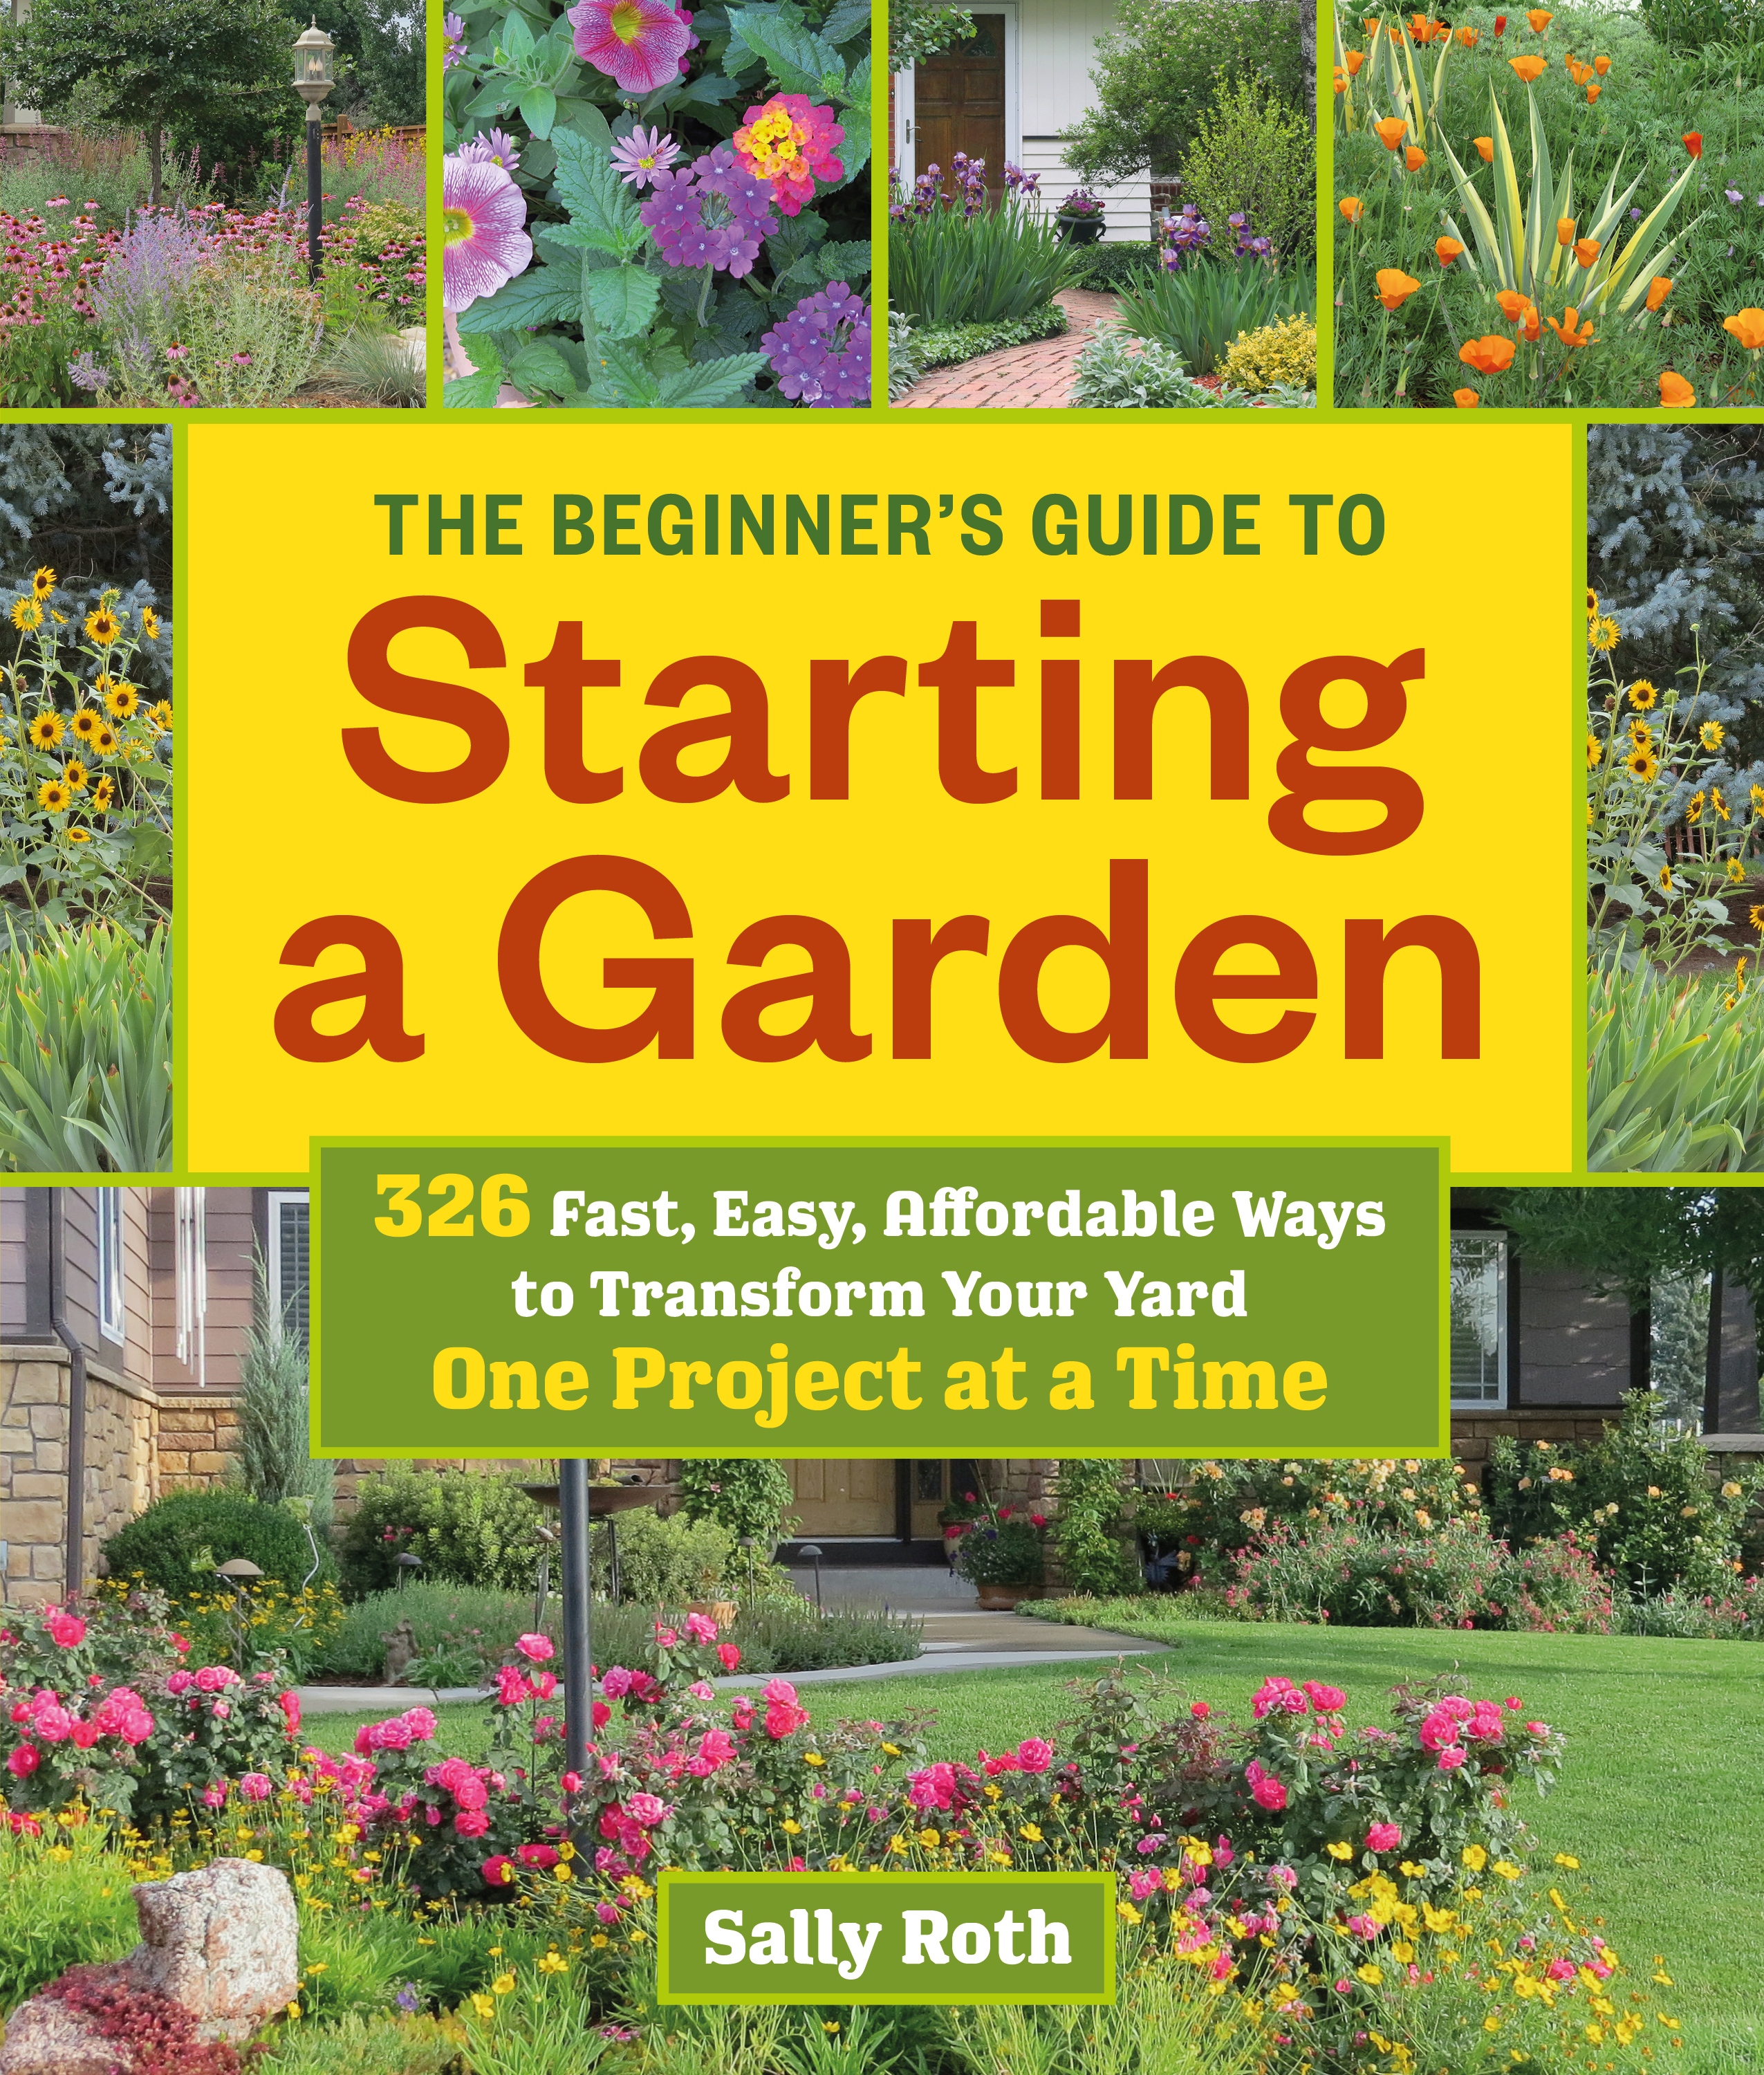 How To Start A Flower Garden In Your Front Yard   The Flowers Are Very  Beautiful, Here We Provide A Collections Of Various Pictures Of Beautiful  Flowers, ...